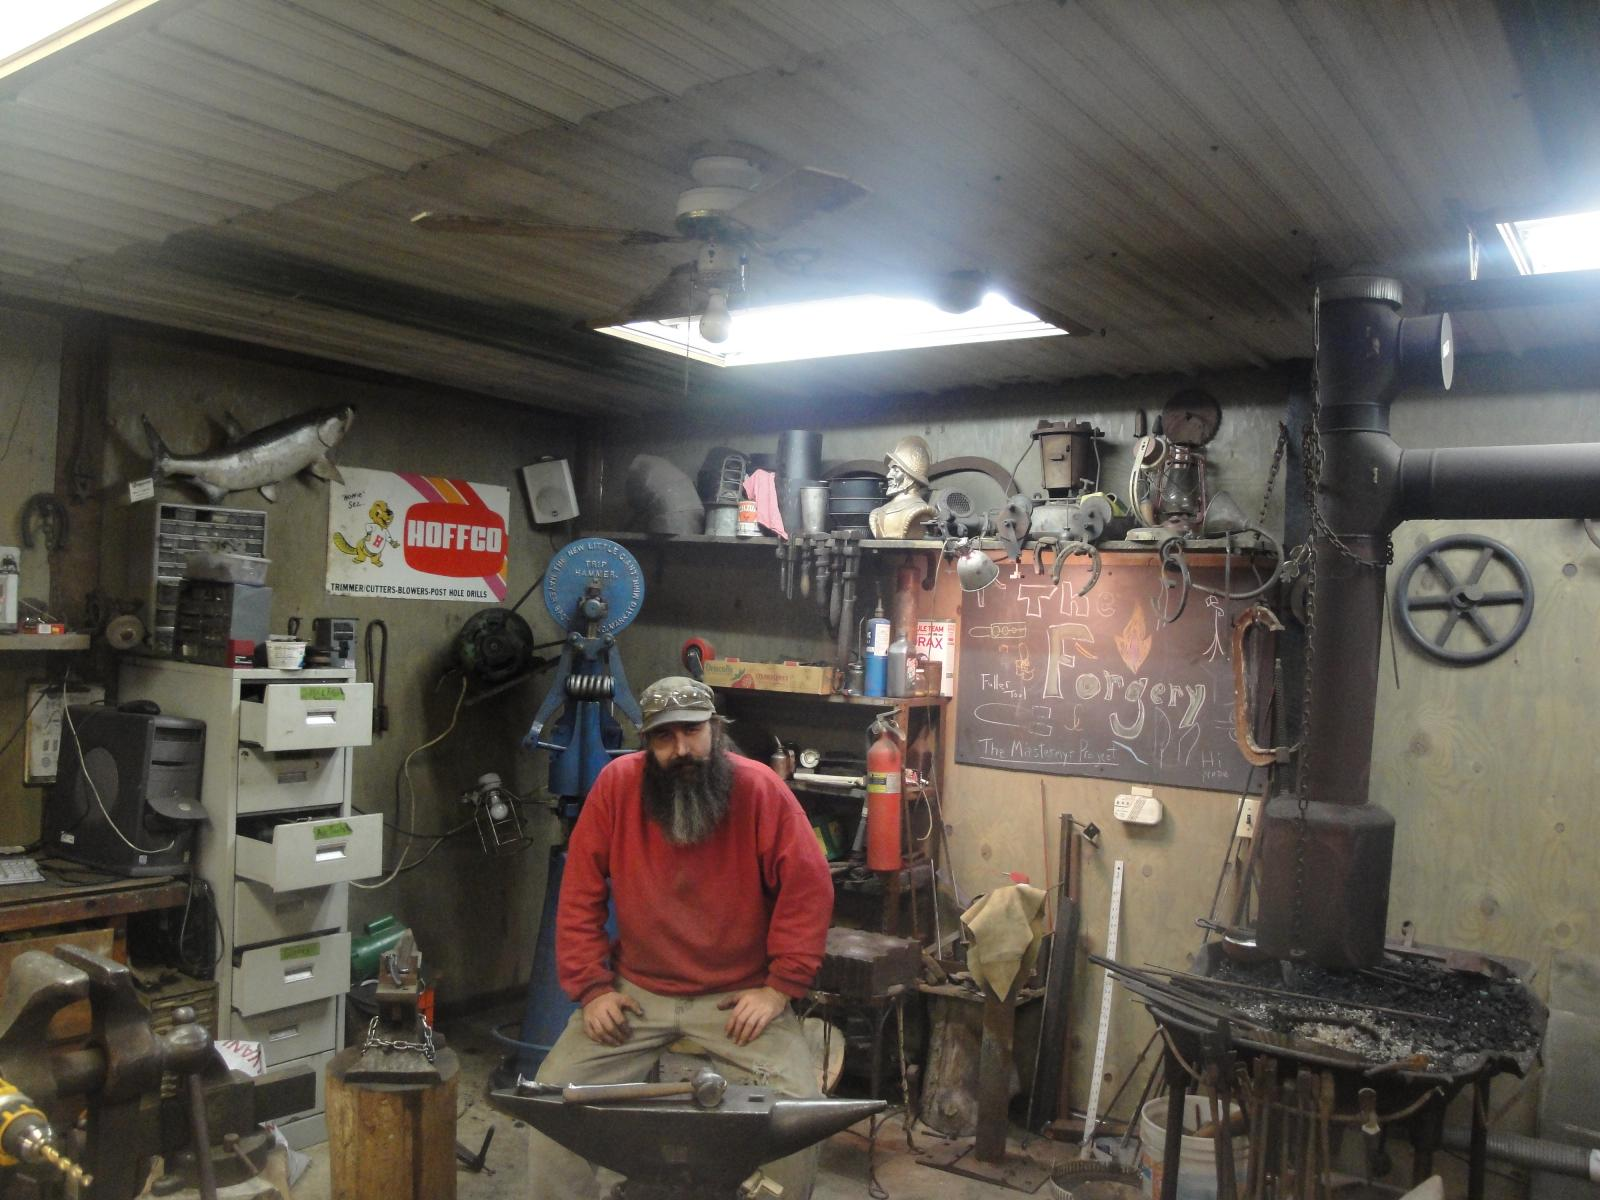 Pics of me and my smithy.my shop name is The Forgery.